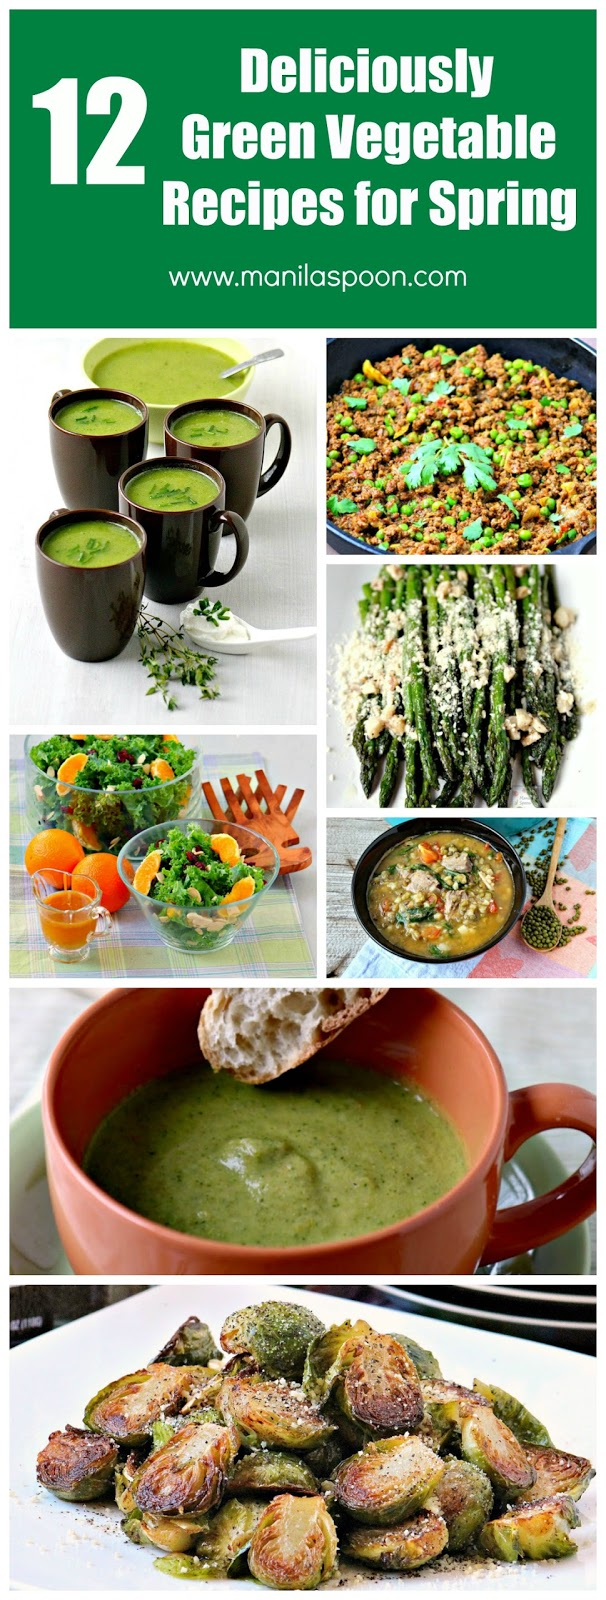 Celebrate the advent of spring with these deliciously green vegetable recipes. Tried and tested, easy recipes for the whole family! | manilaspoon.com